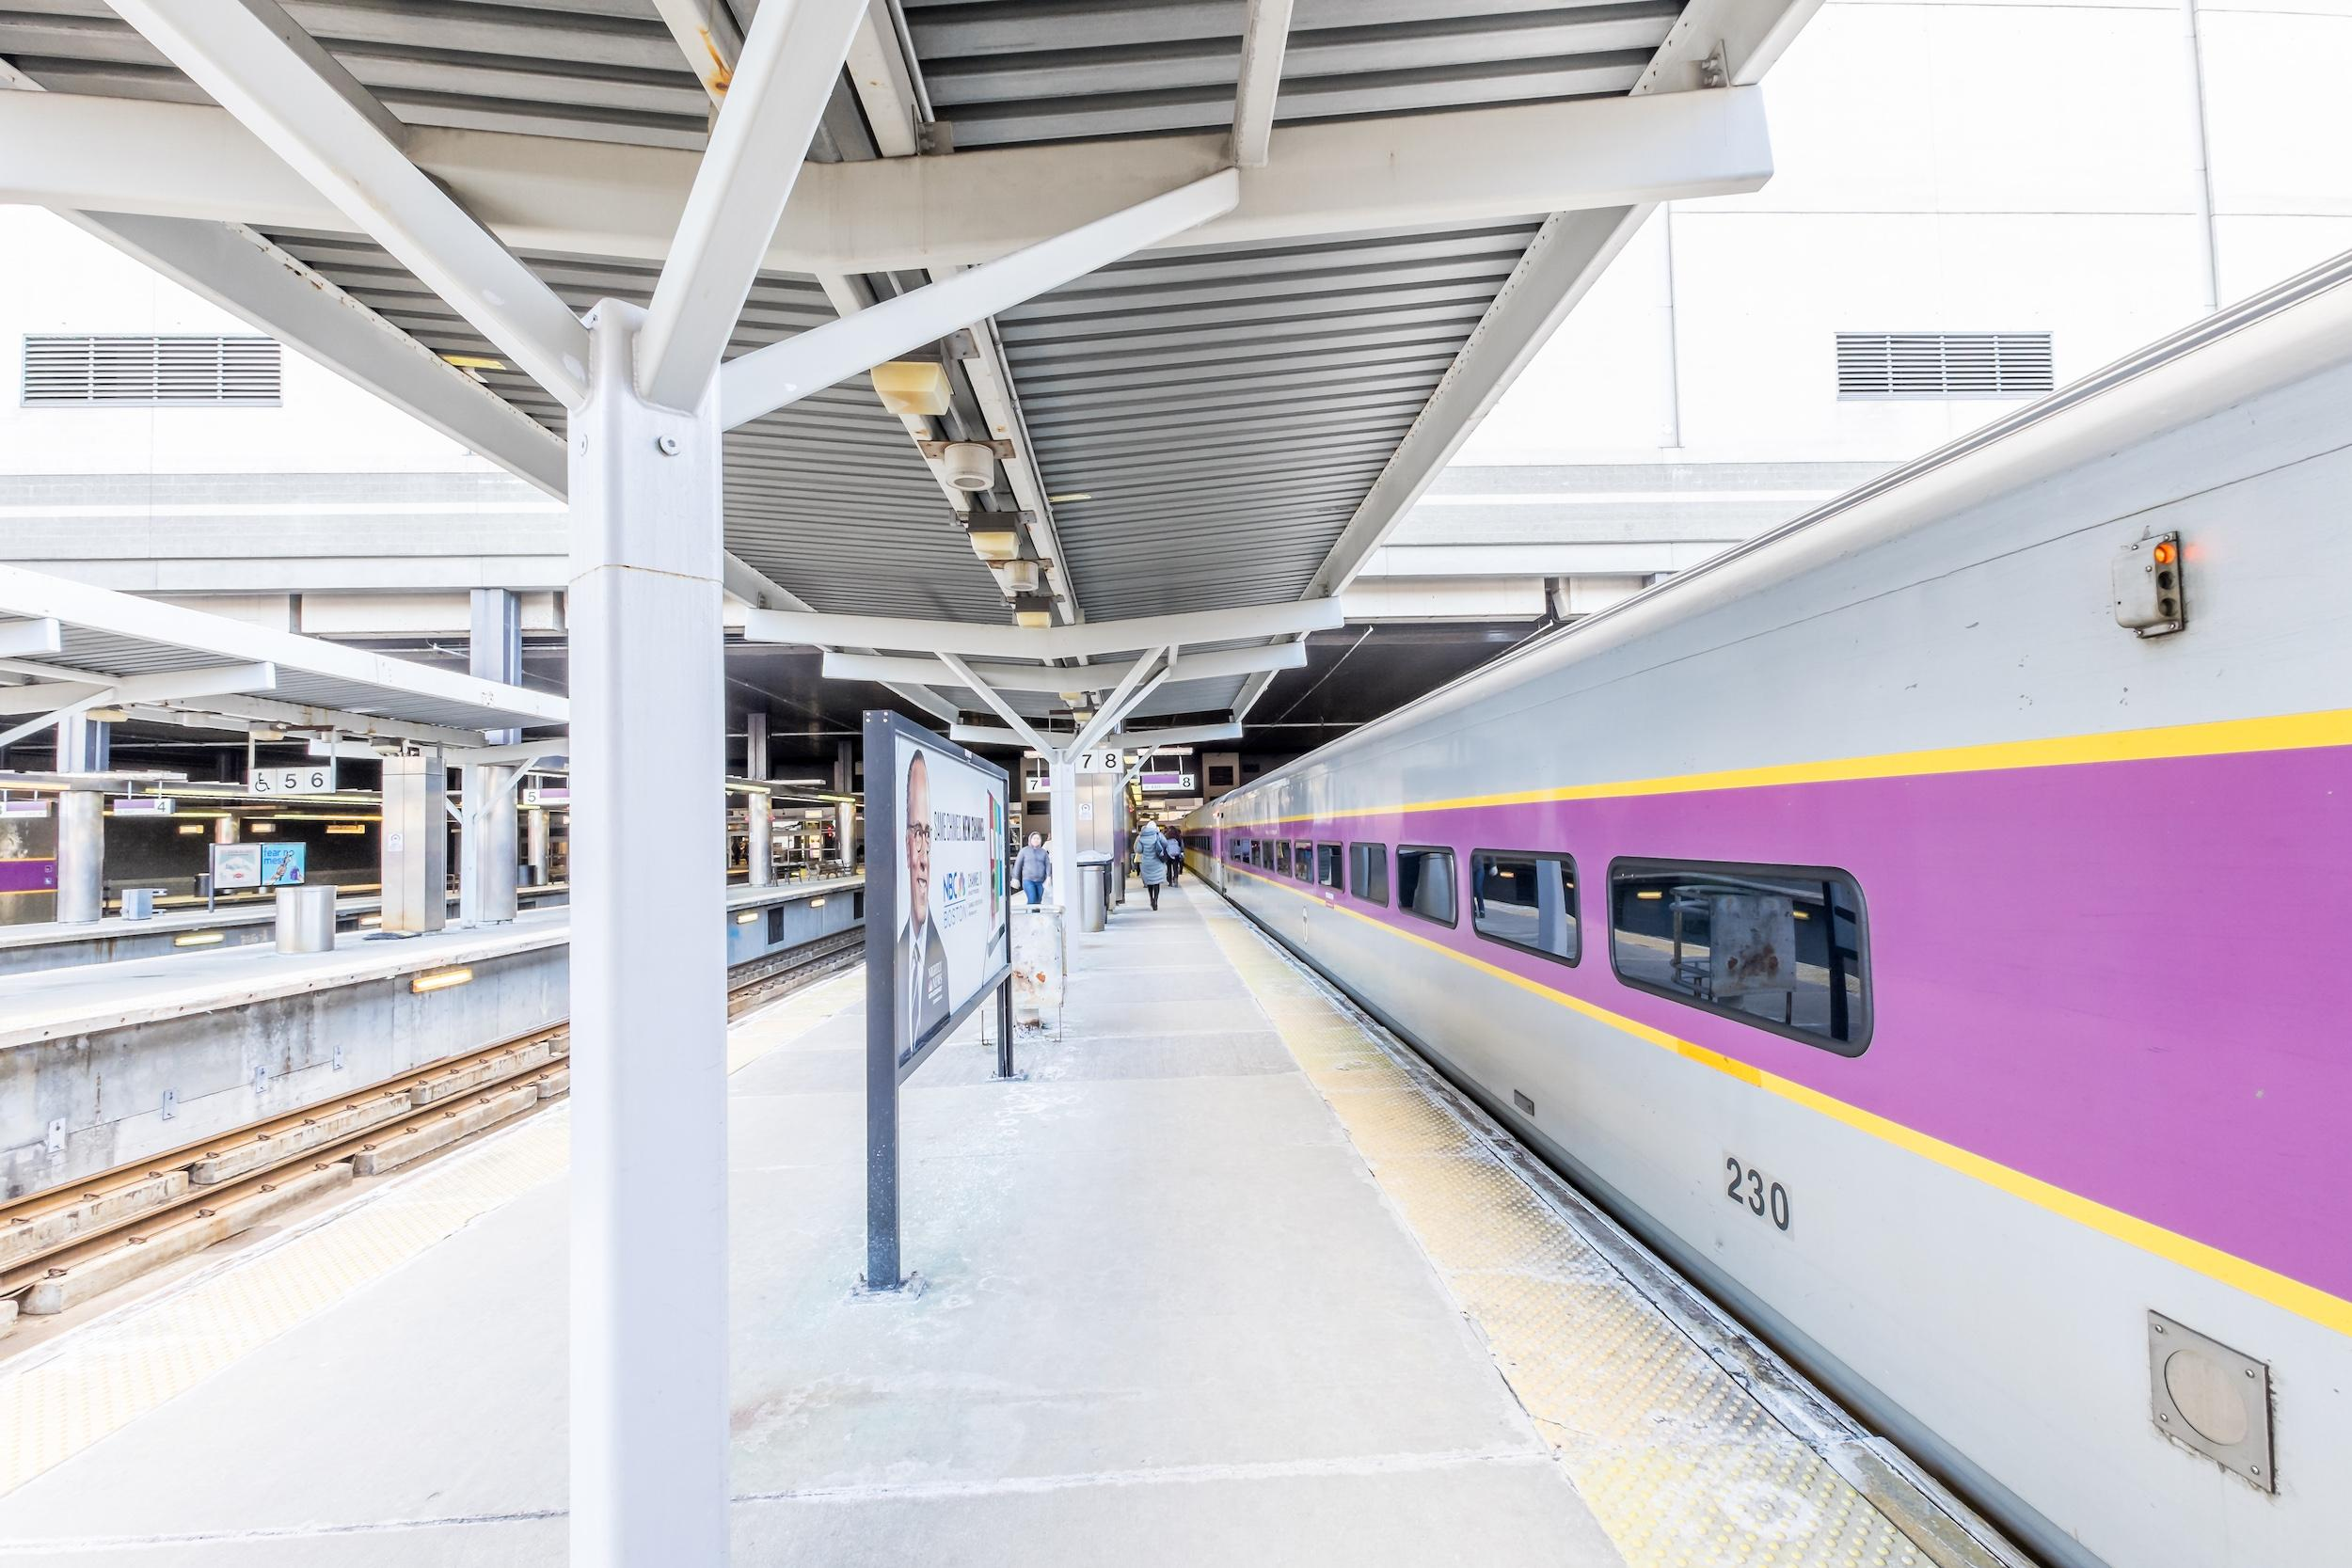 Commuter Rail at North Station platform